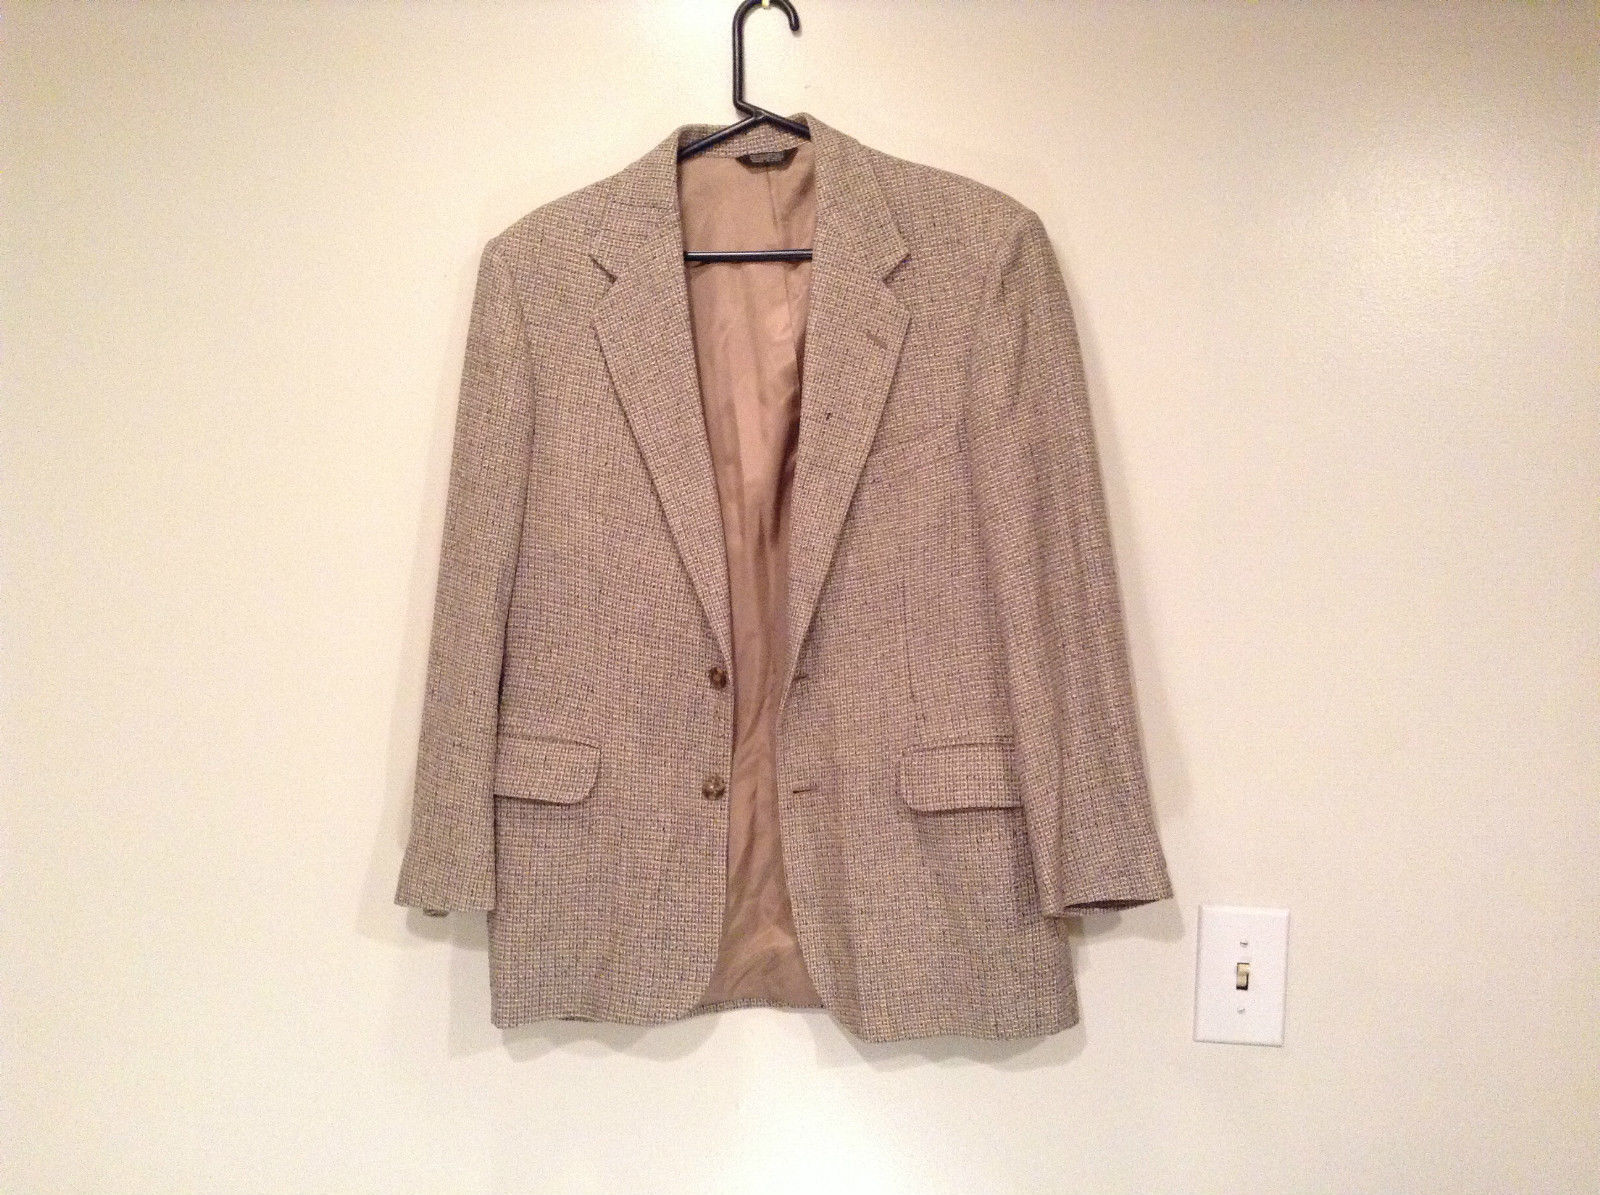 Norm Thompson Size 38R Beige Blue Plaid Suit Jacket Blazer Two Button Closure